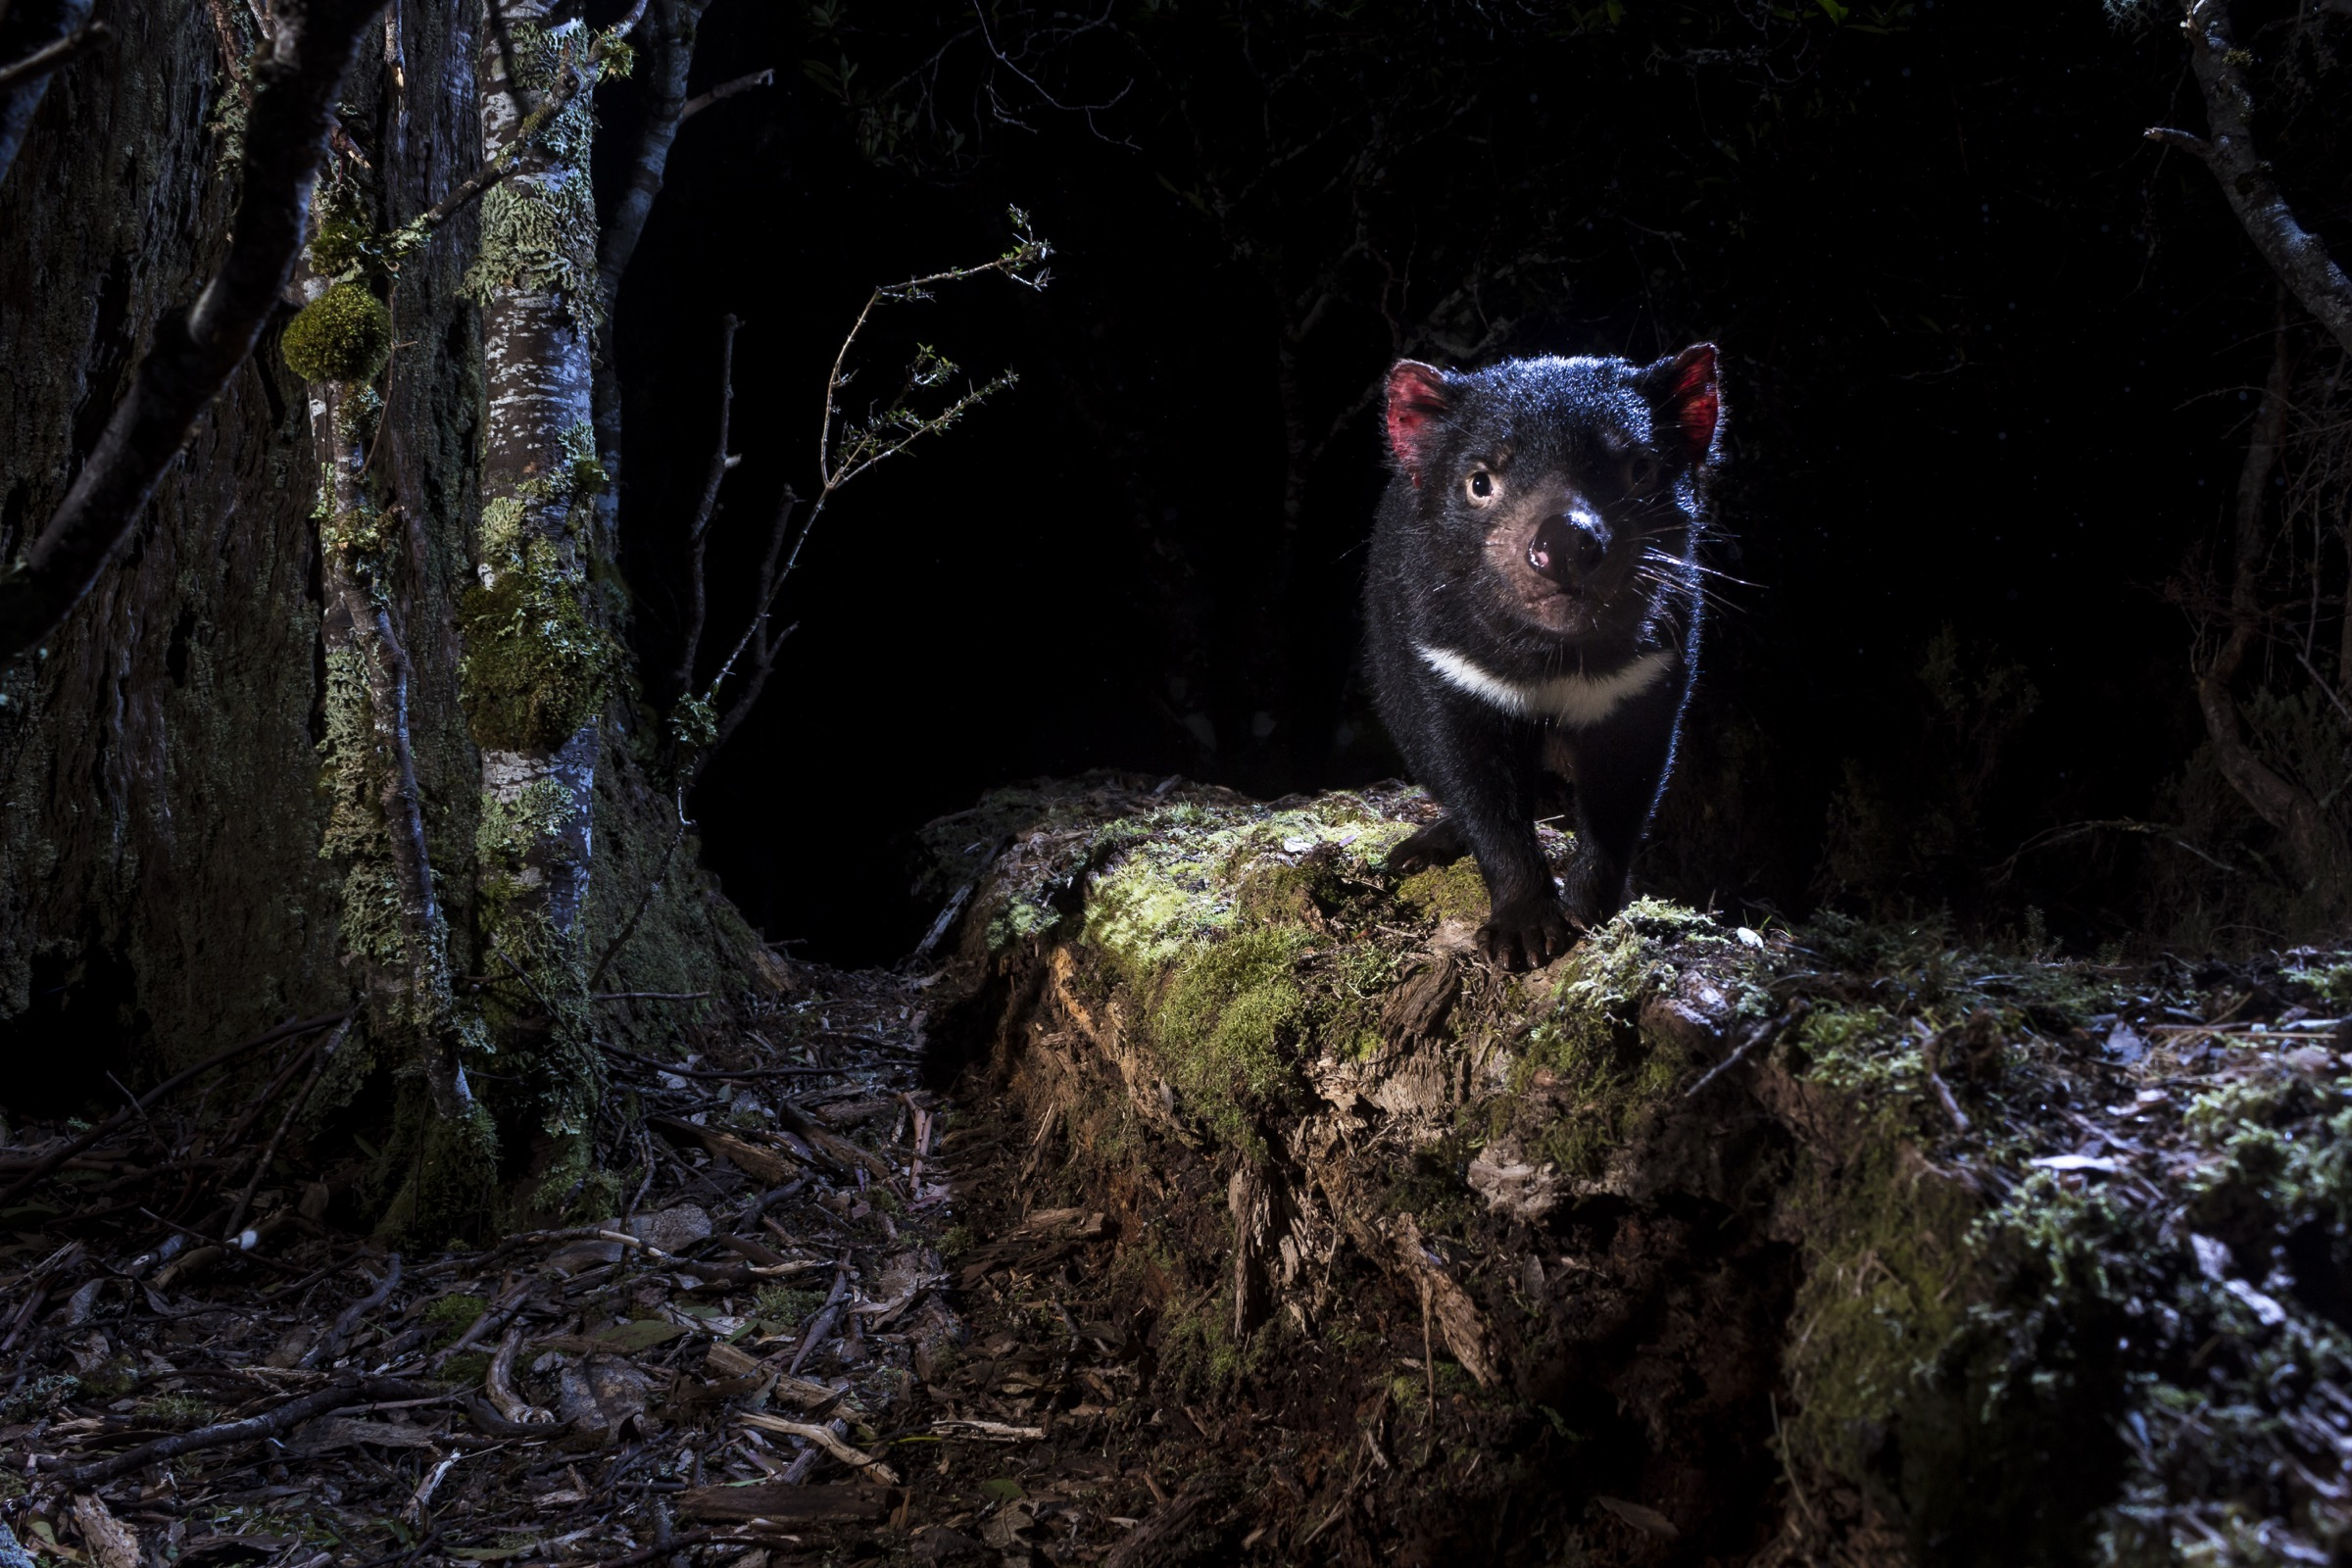 Using remote camera traps, photographer Heath Holden captured rare images like this one of wild Tasmanian devils (Sarcophilus harrisii) in their natural habitat. The animals' bright red ears and eerie, raucous scuffles earned the scrappy marsupials their haunting common name.